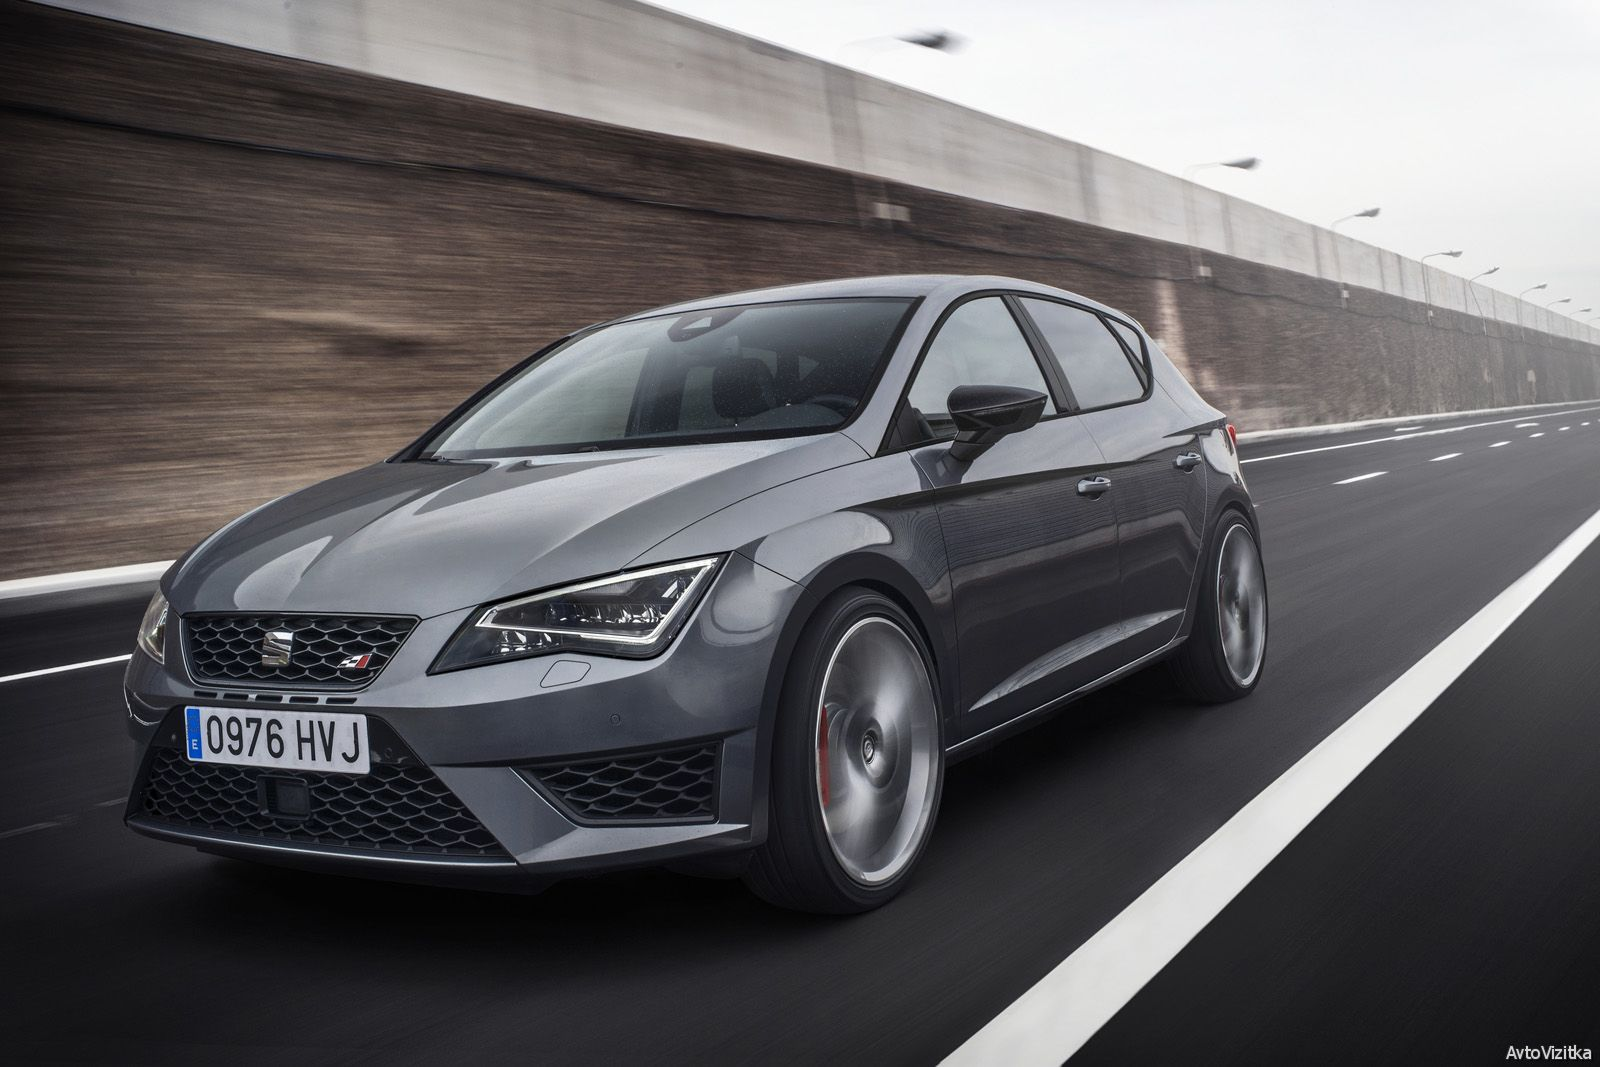 2016 seat leon iii pictures information and specs auto. Black Bedroom Furniture Sets. Home Design Ideas